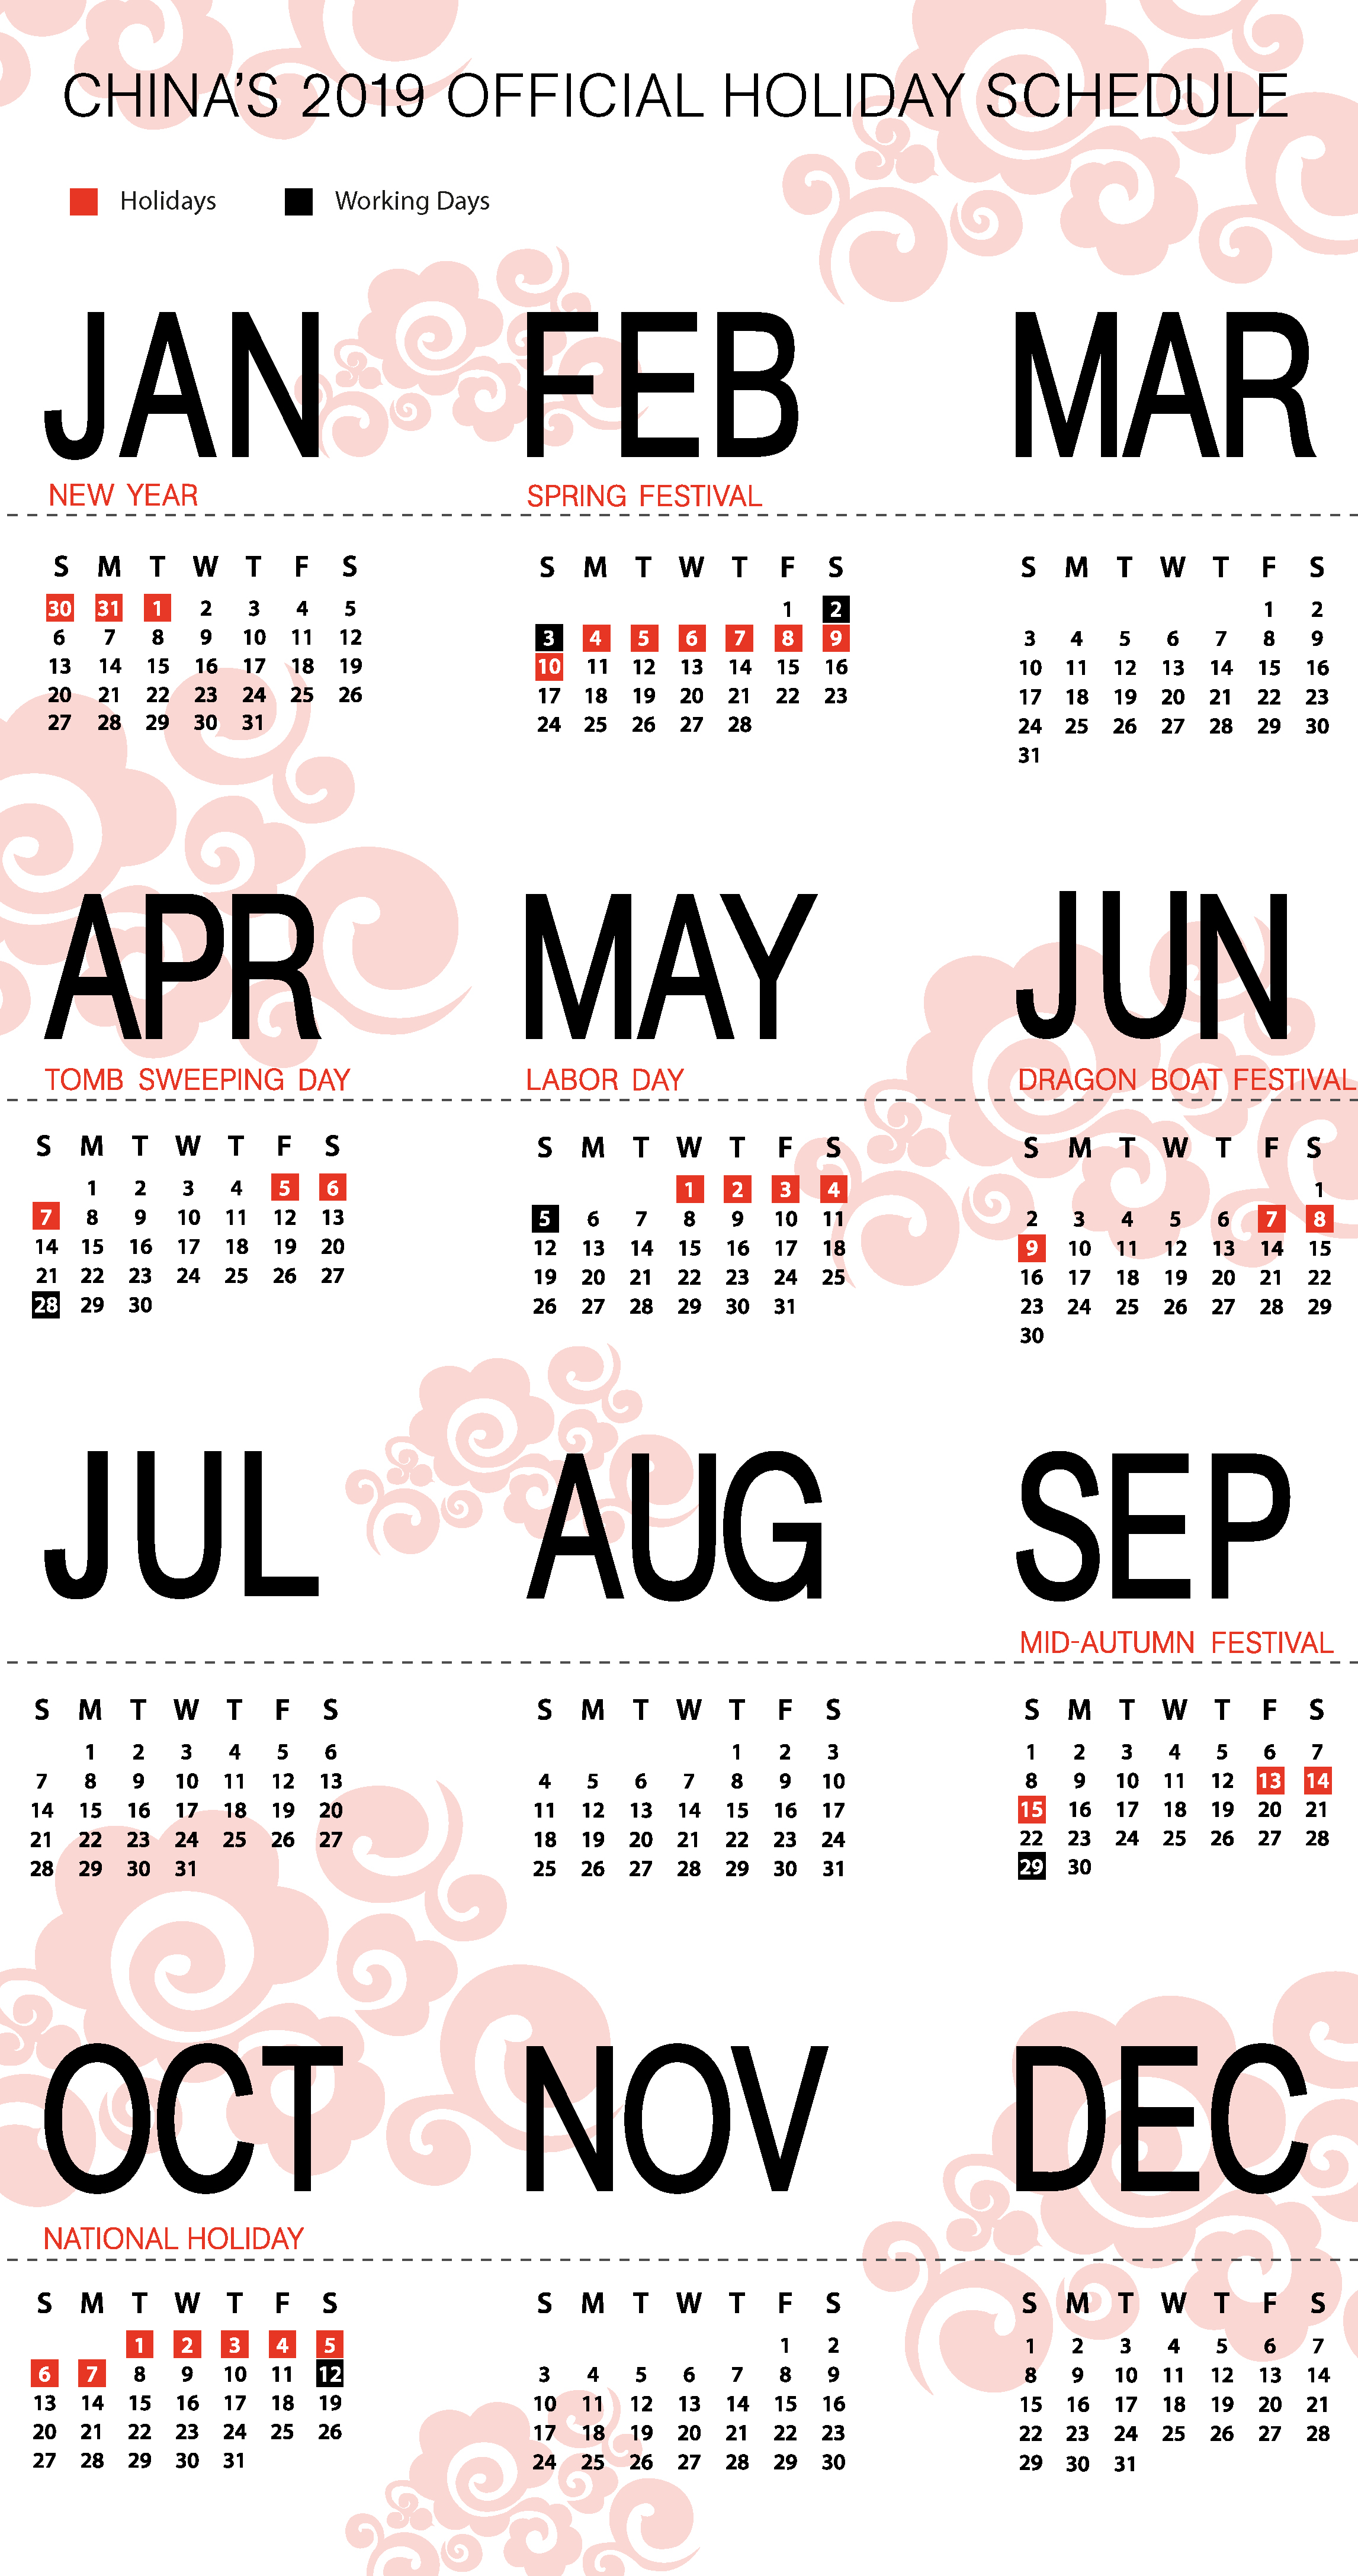 413c32b1 China's 2019 Holiday Schedule: Changes to Labor Day Holiday Dates